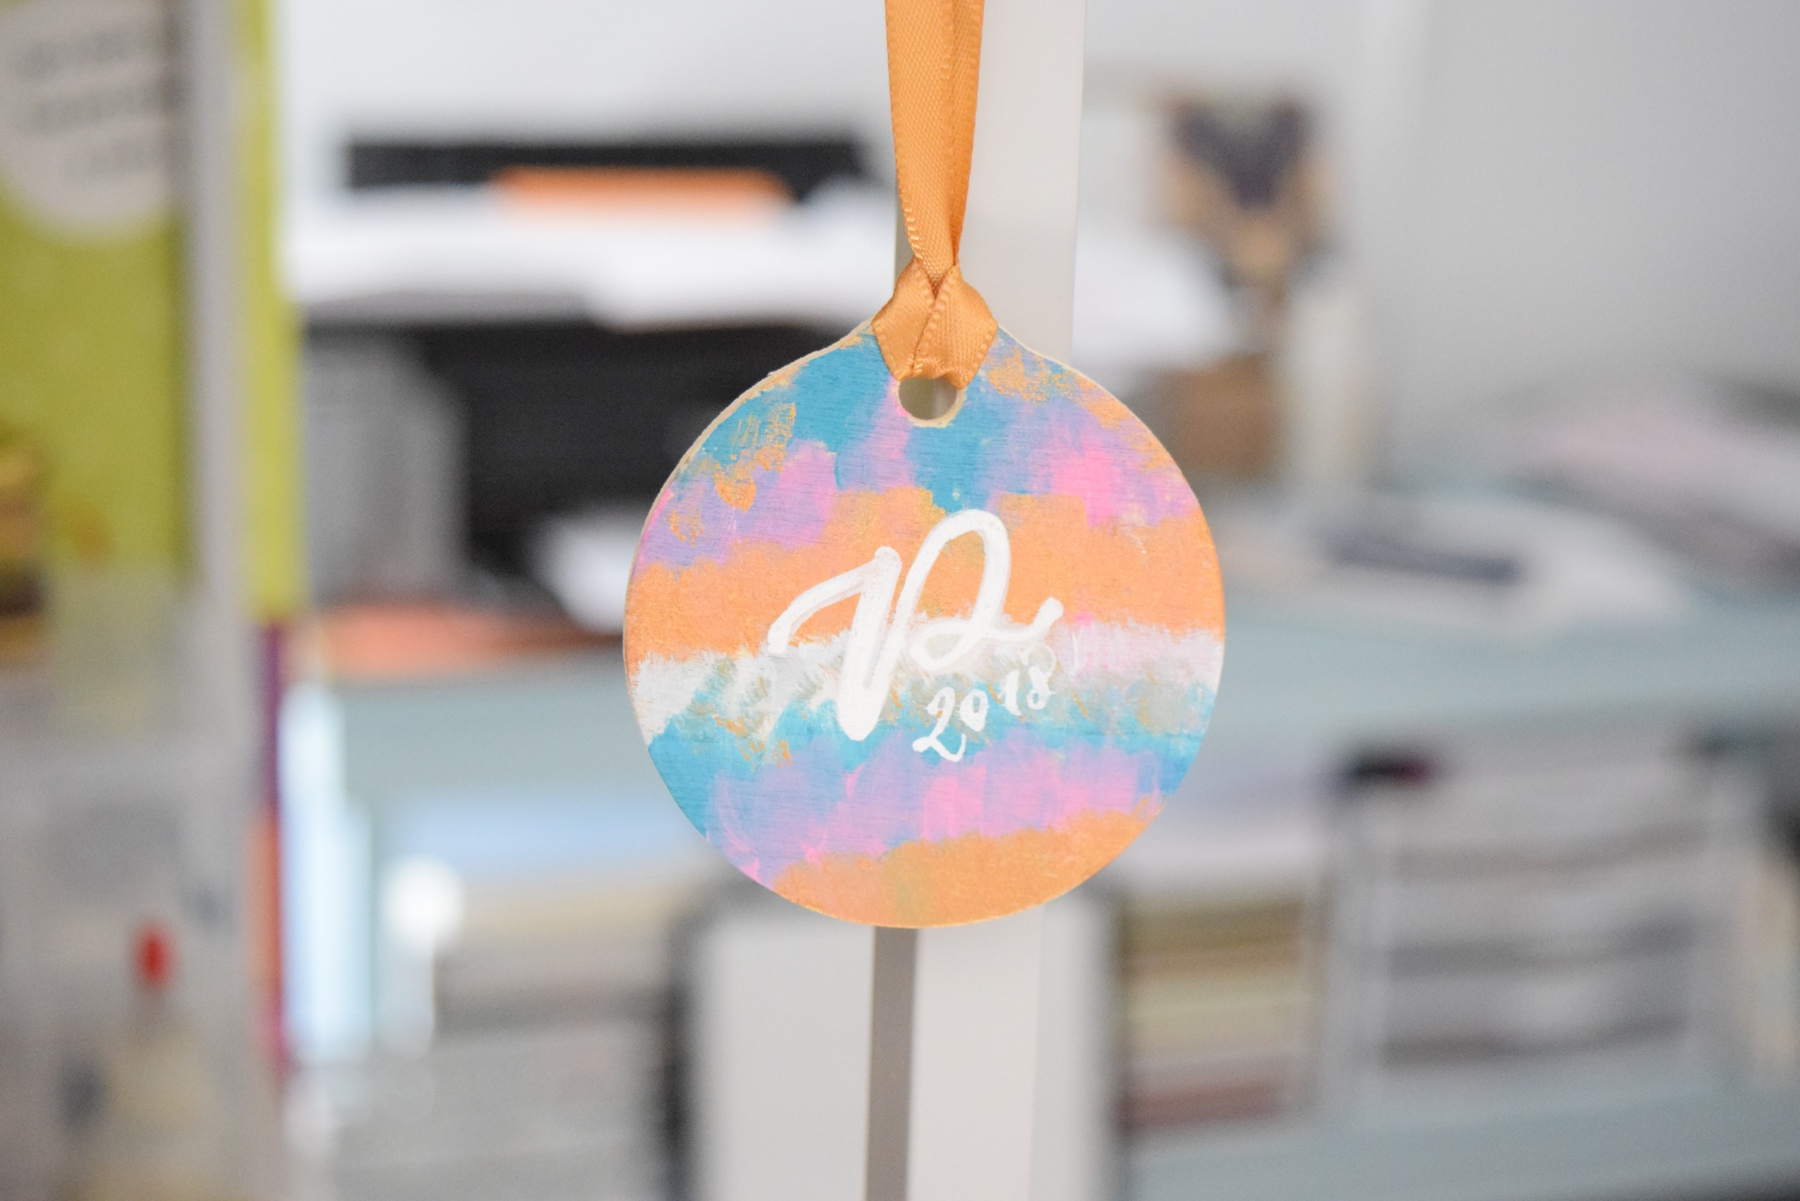 Modern Personalized Christmas Ornament   Hand Painted & Handwritten in Calligraphy Wood Ornament   Keepsake Monogram Ornament   Gift for Her